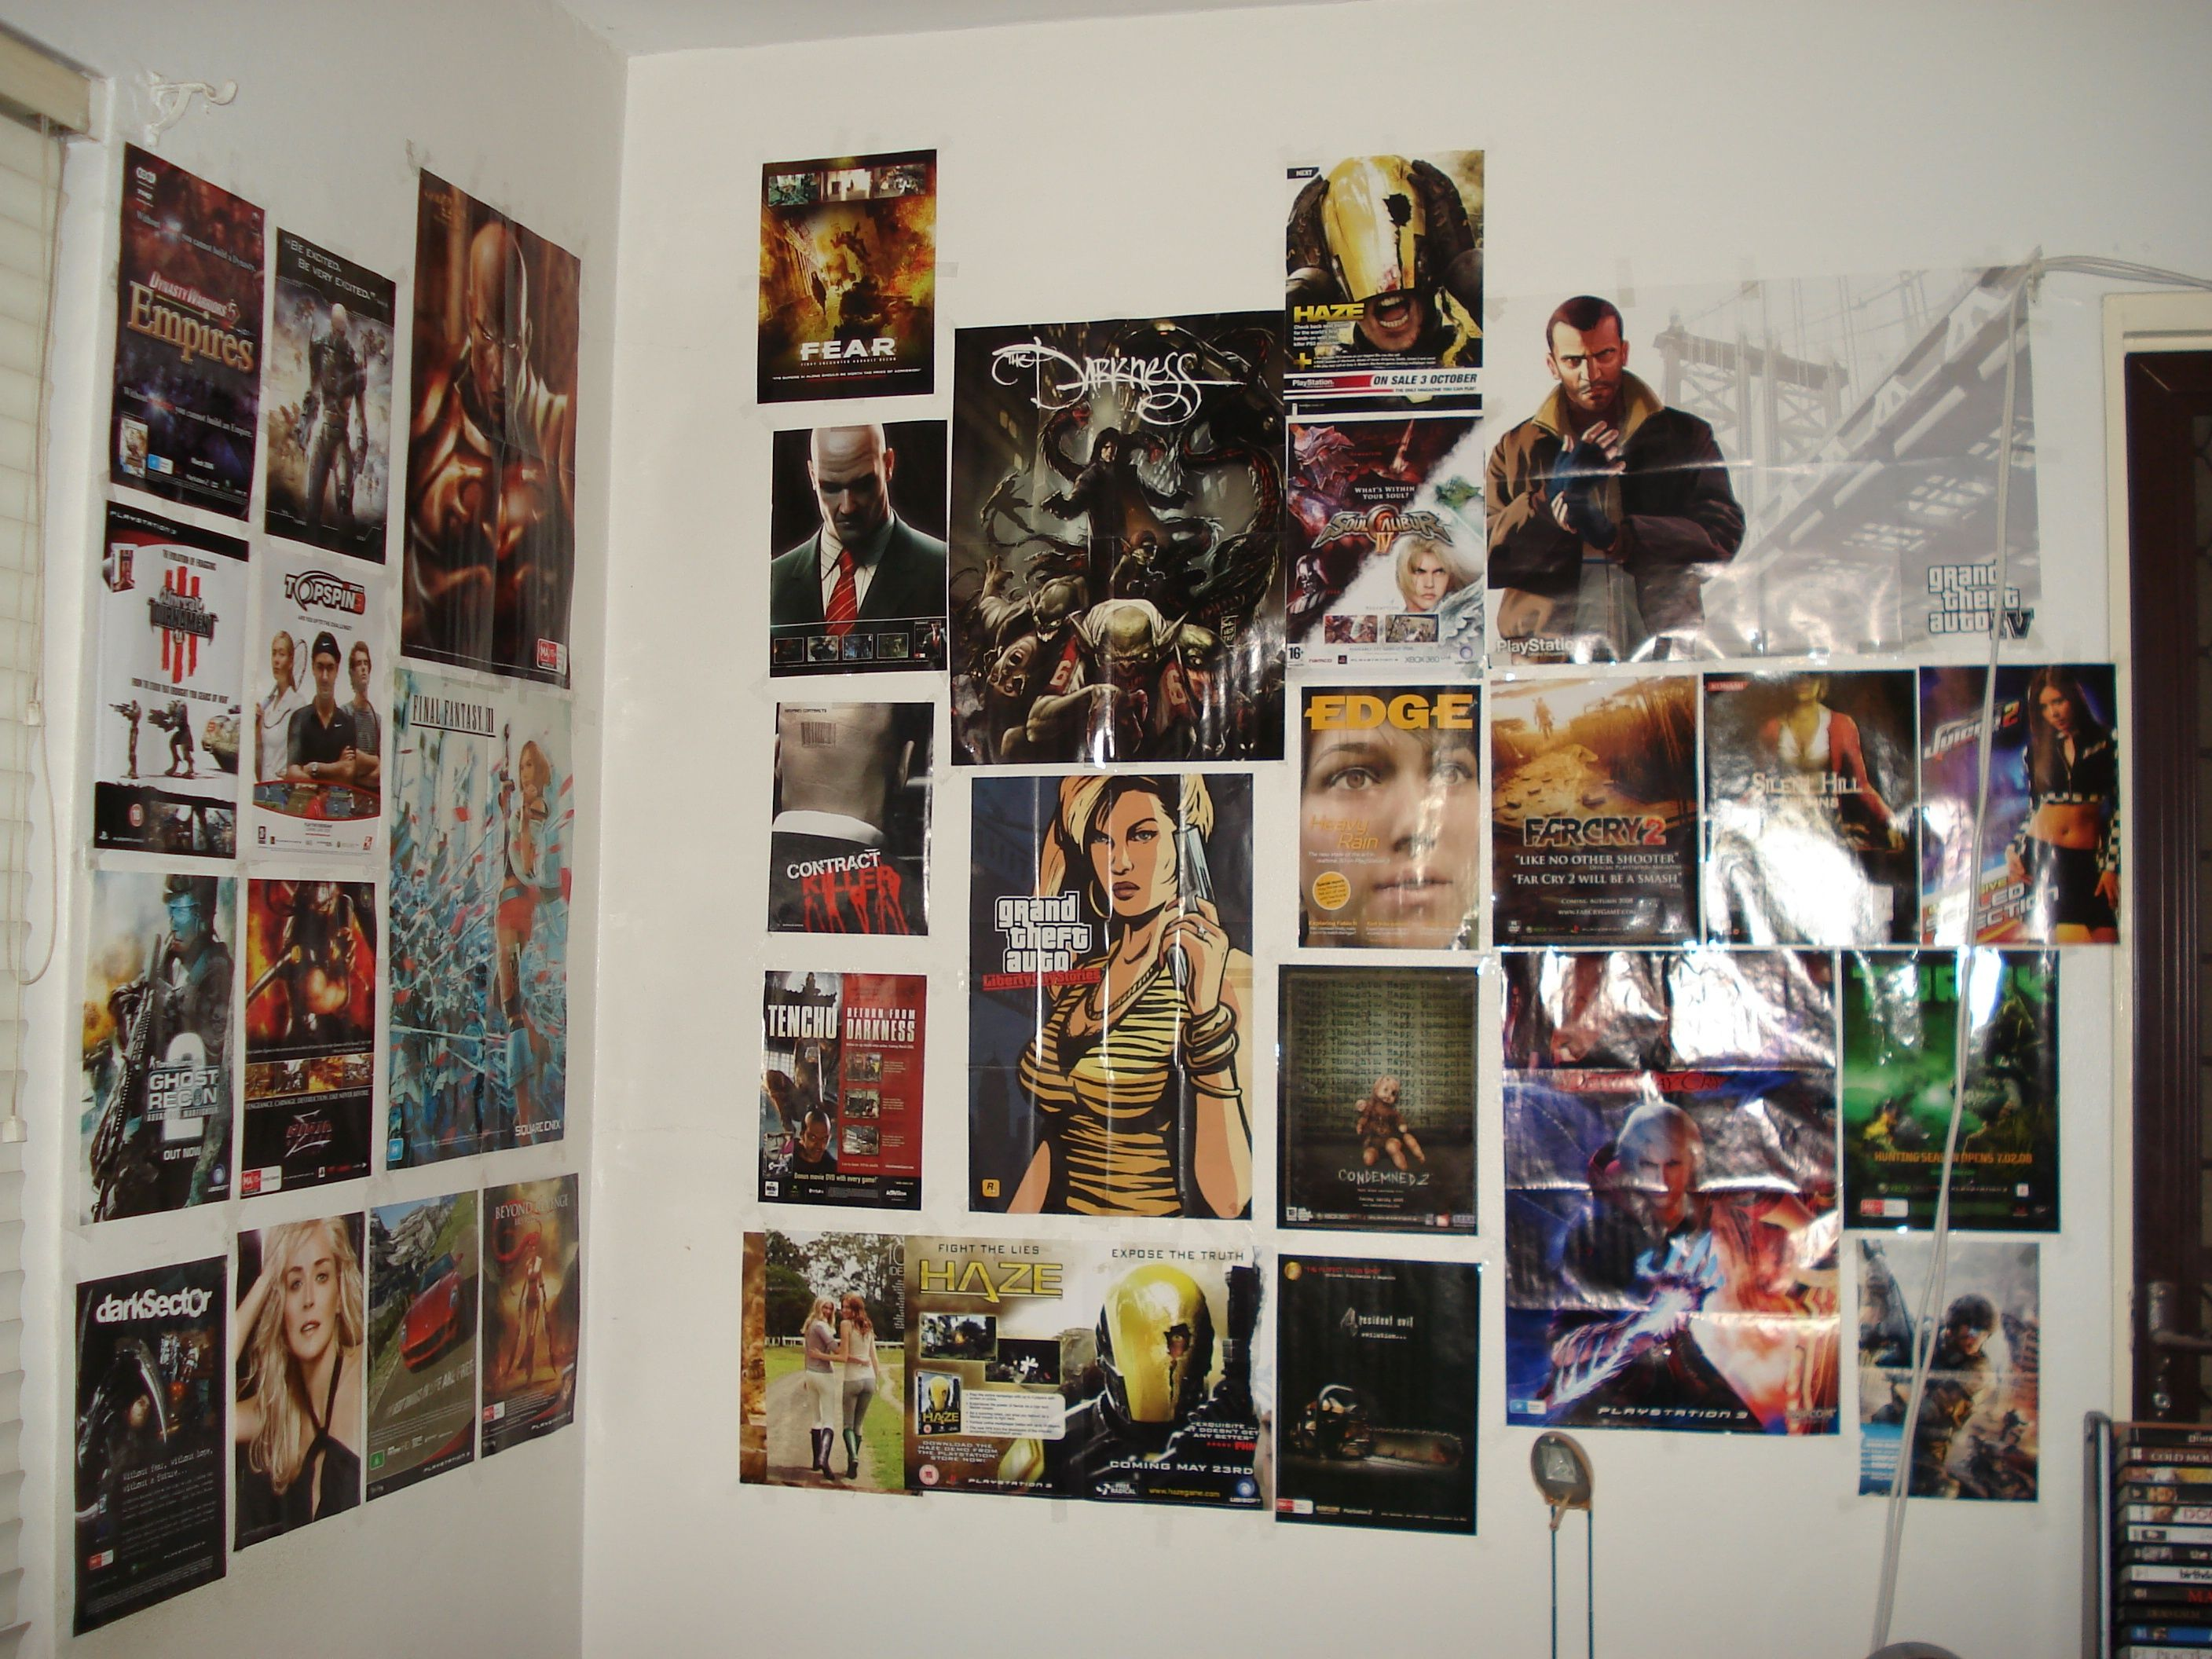 This bedroom wall with game posters from thm hosted ebabee likes